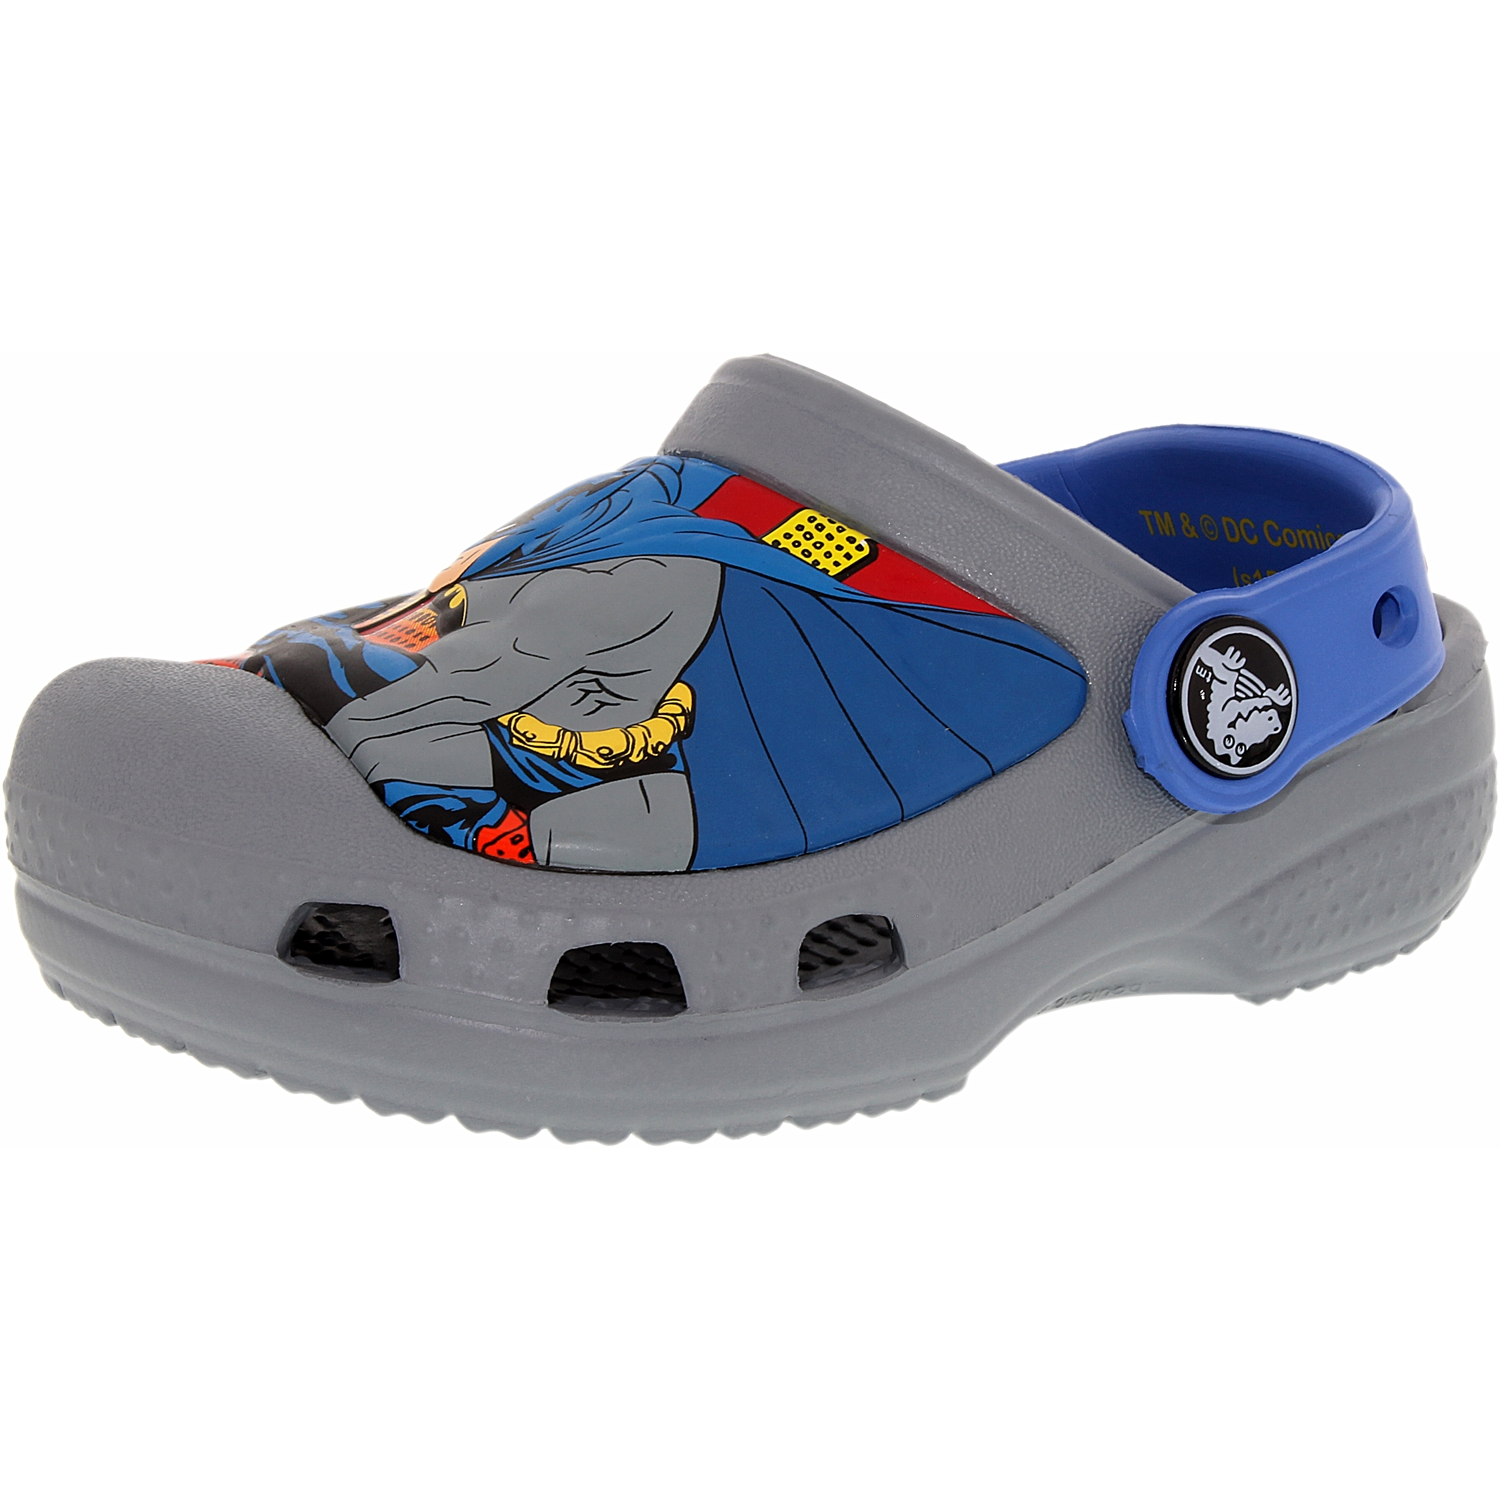 Crocs Creative Crocs Batman Clog Toddler Round Toe Synthetic Gray Clogs by Crocs